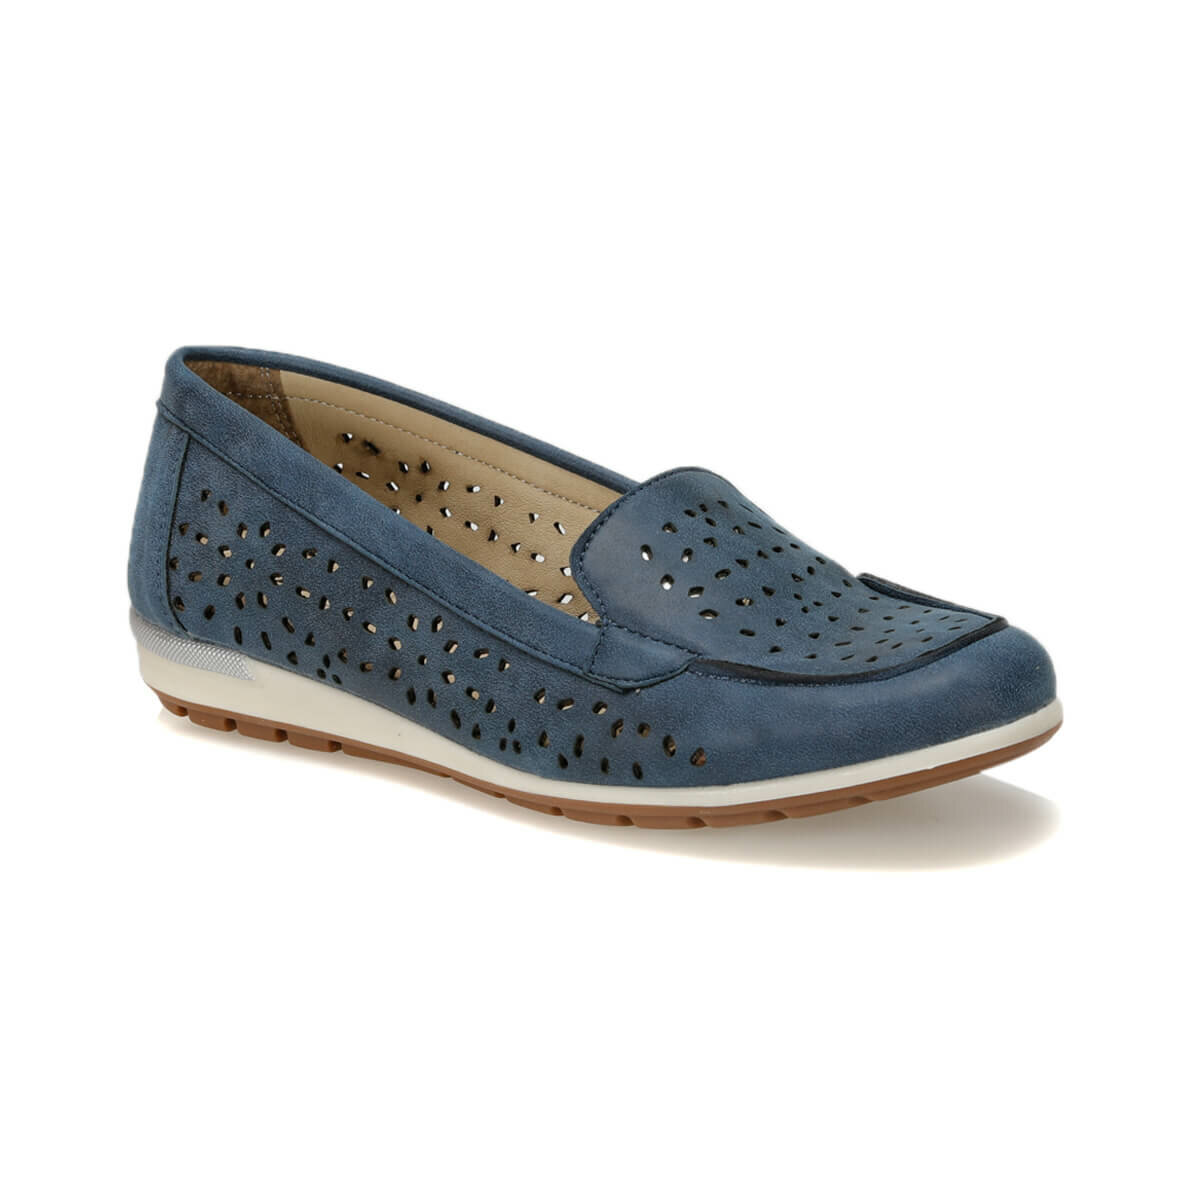 FLO 81.157238NZ Navy Blue Women 'S Loafer Shoes Polaris